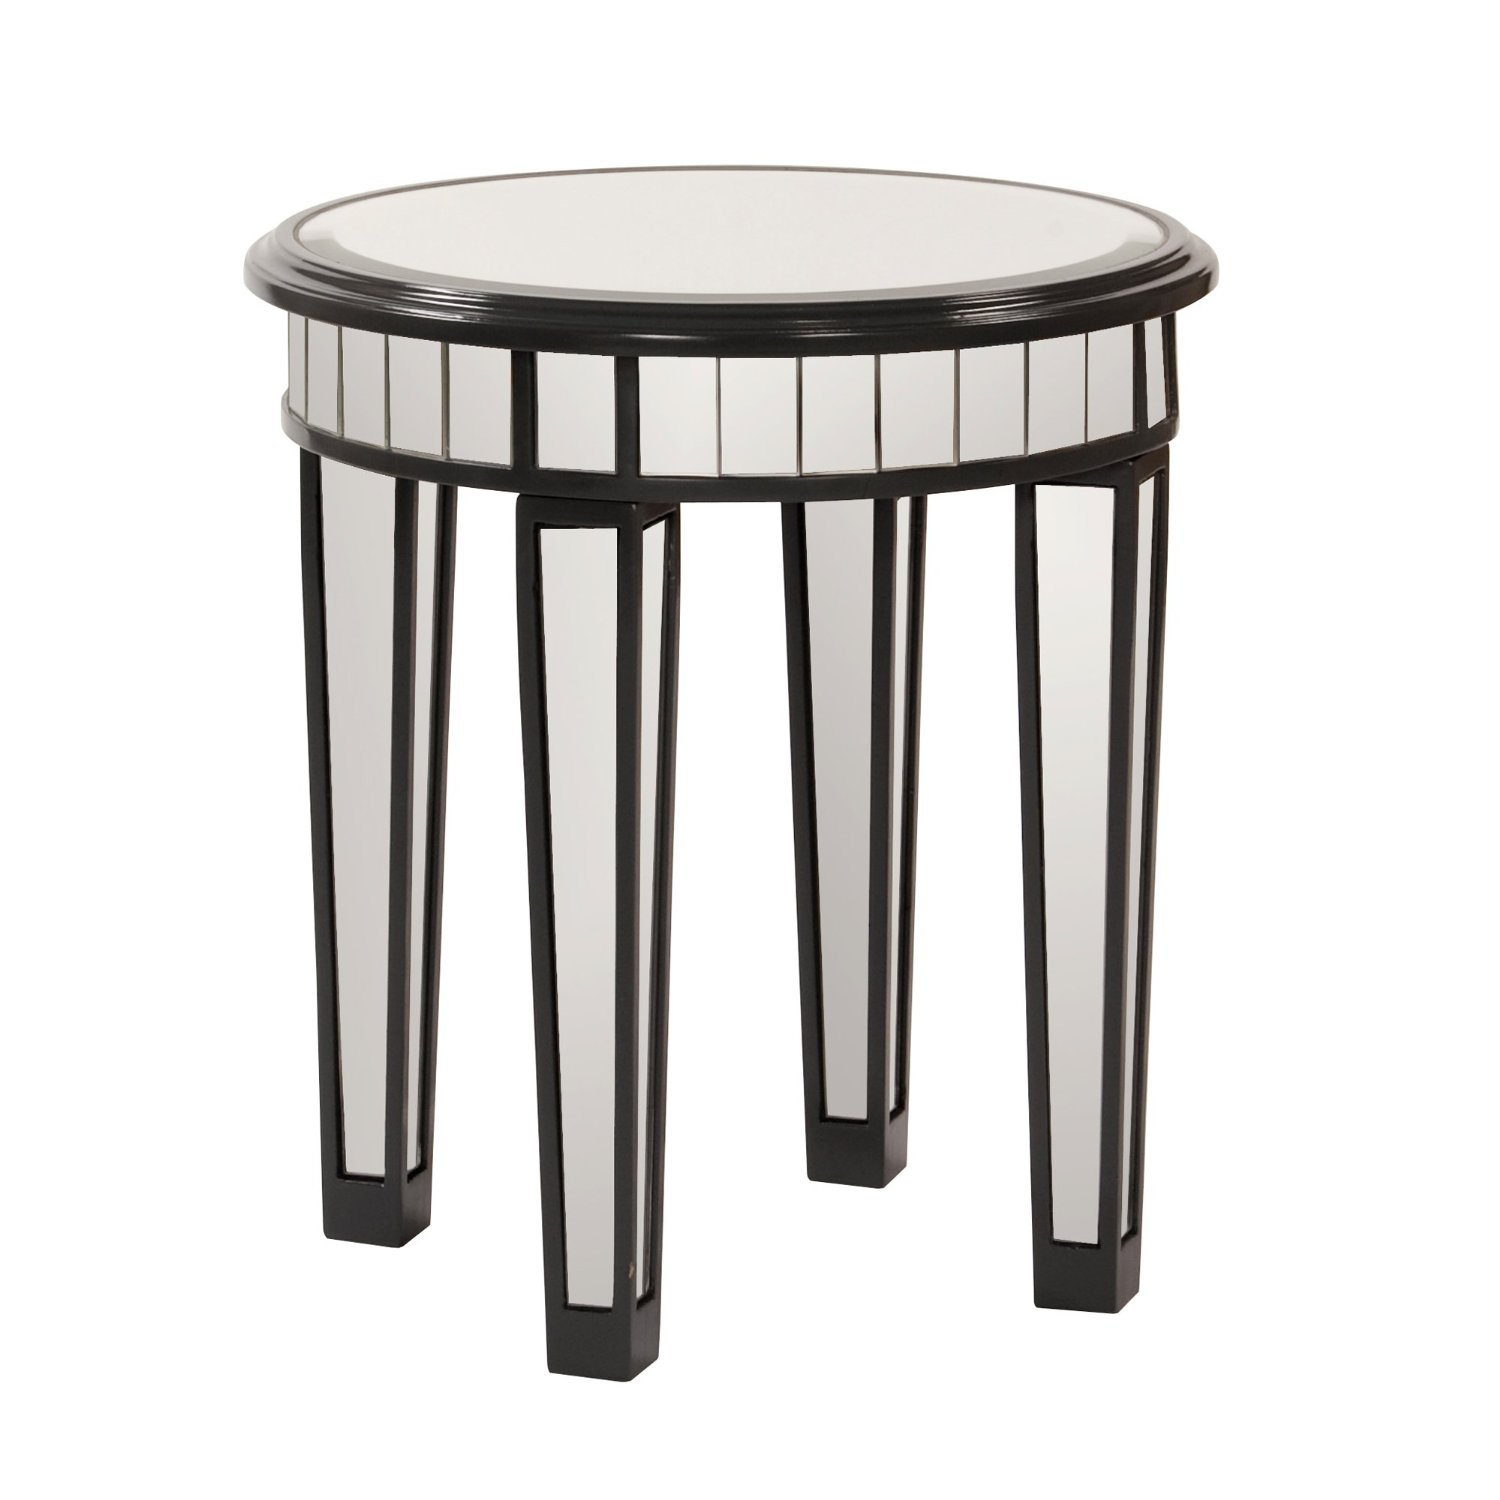 round mirrored accent table with legs and black wooden covers cherry furniture bedroom sets drum small couches for spaces farmhouse coffee set living room patio dining ashley